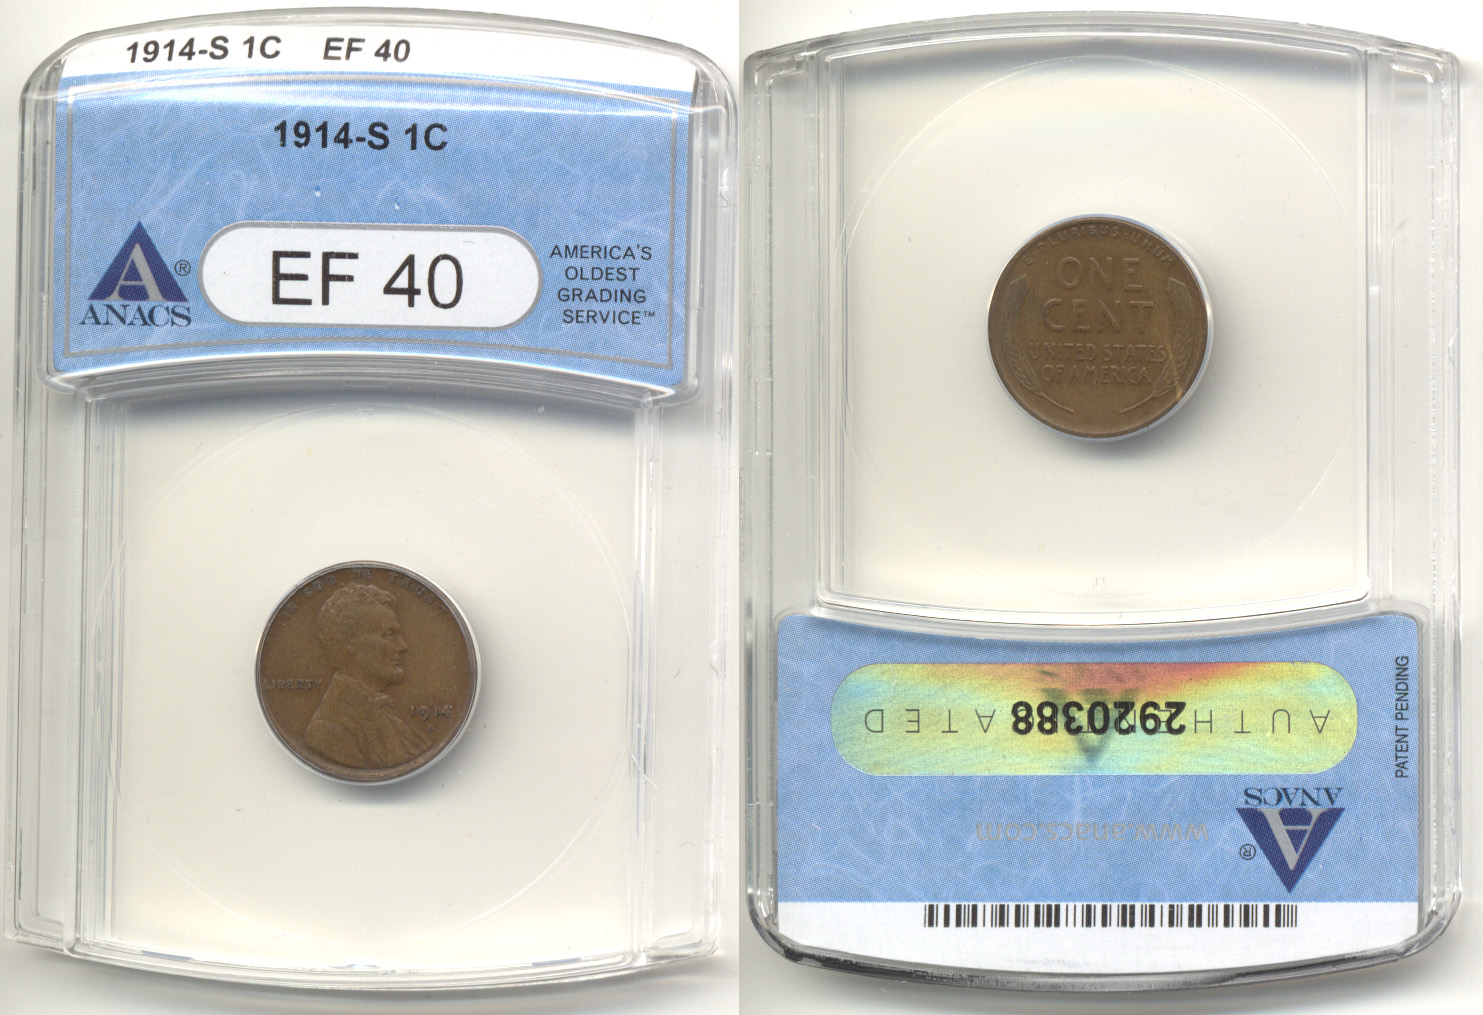 1914-S Lincoln Cent ANACS EF-40